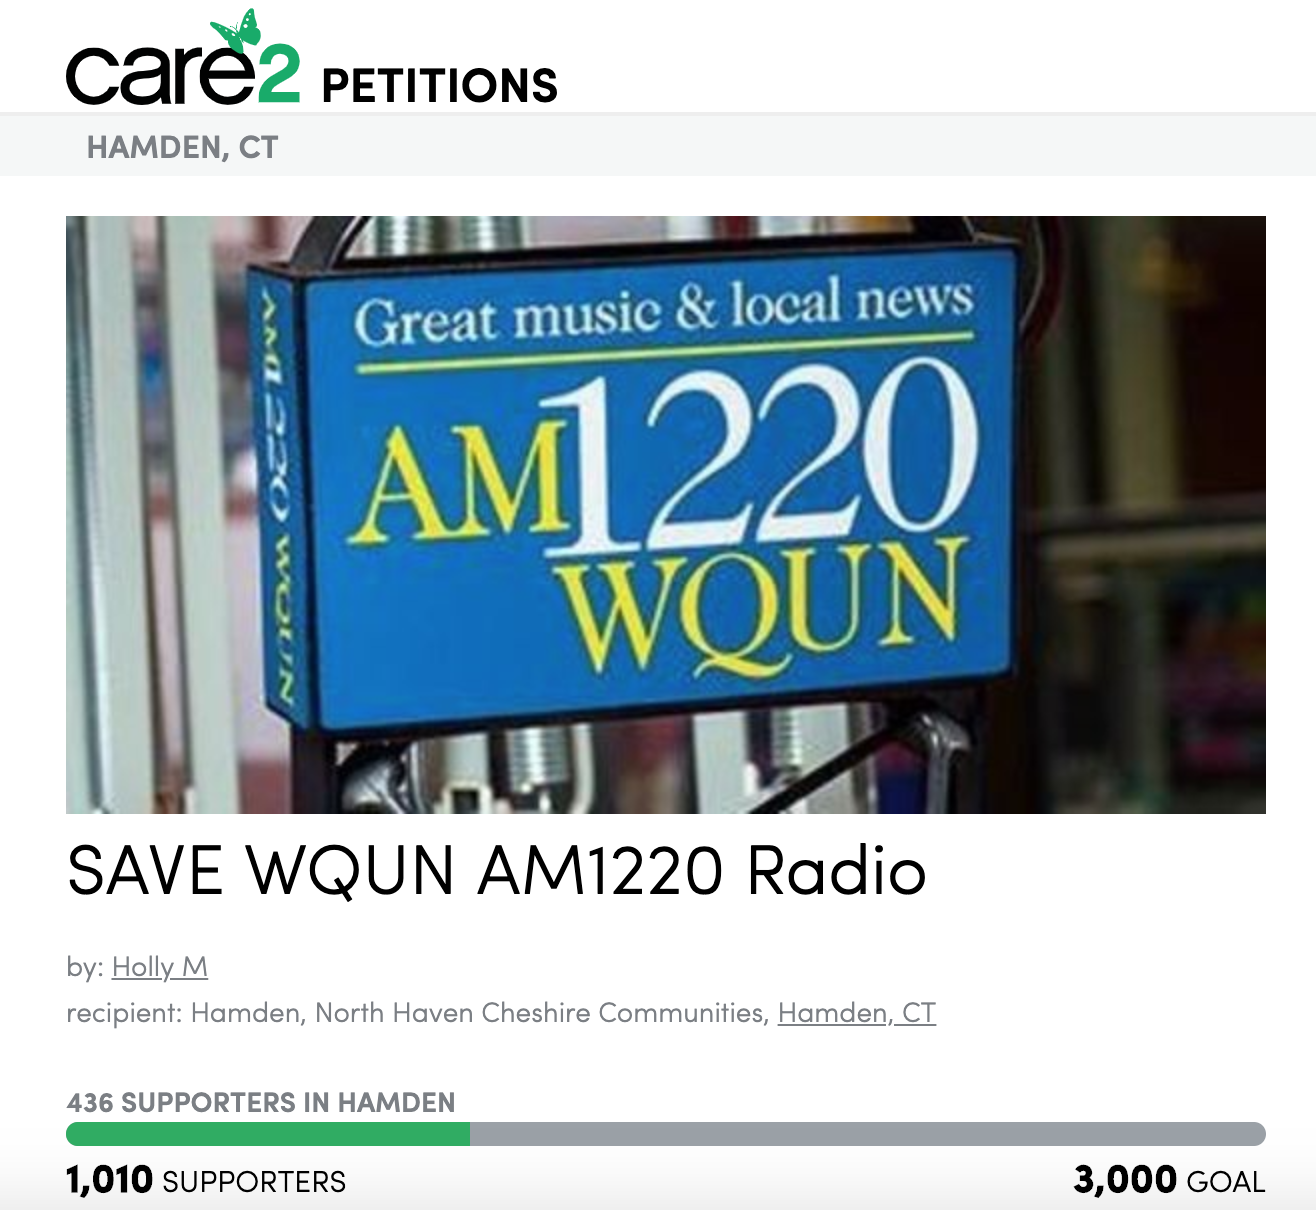 Masi's petition, which she created in February, has since collected over 1,000 signatures.